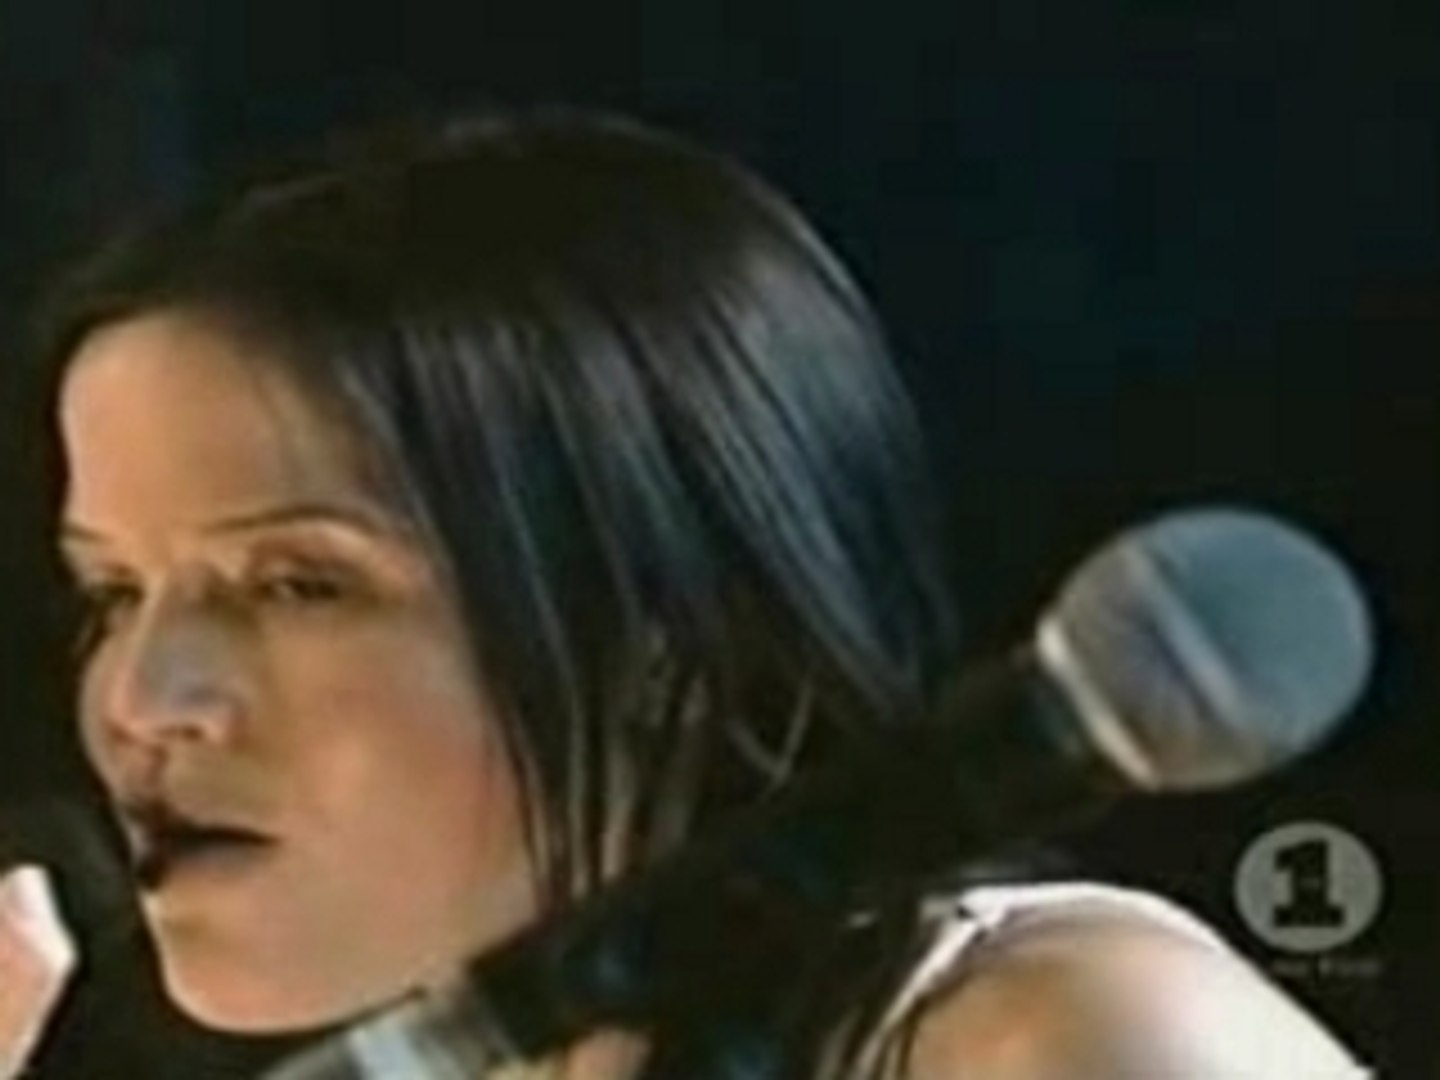 U2, The Corrs - Summer Wine (Video)